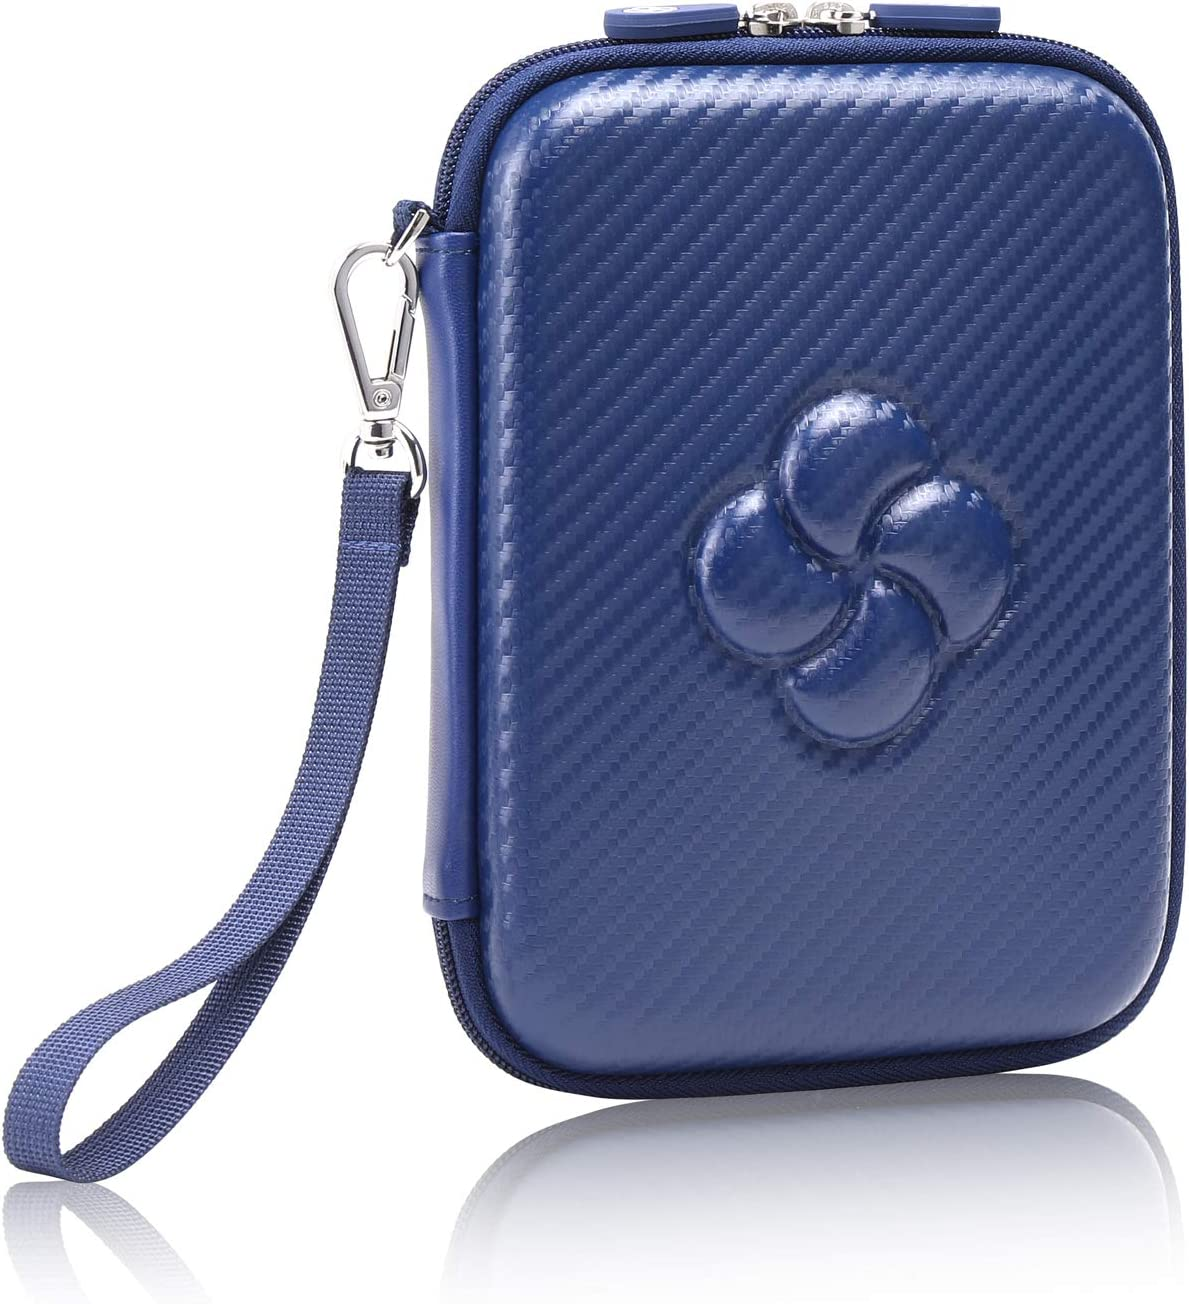 Koonice Travel Case Fits Apple Magic Trackpad 2 (MJ2R2LL/A)-Premium Hard Protable Storage Carrying Case (Navy Blue)